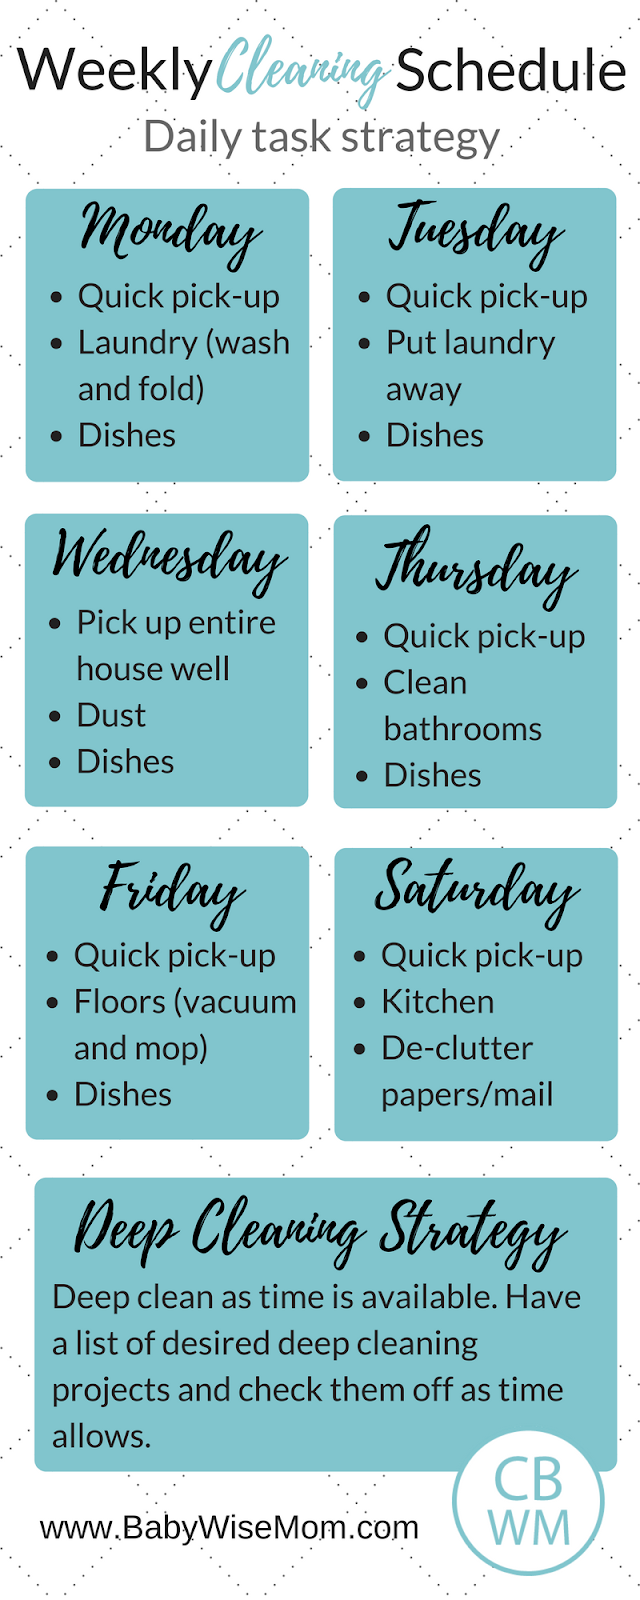 laundry schedule template  Chronicles of a Babywise Mom - laundry schedule template